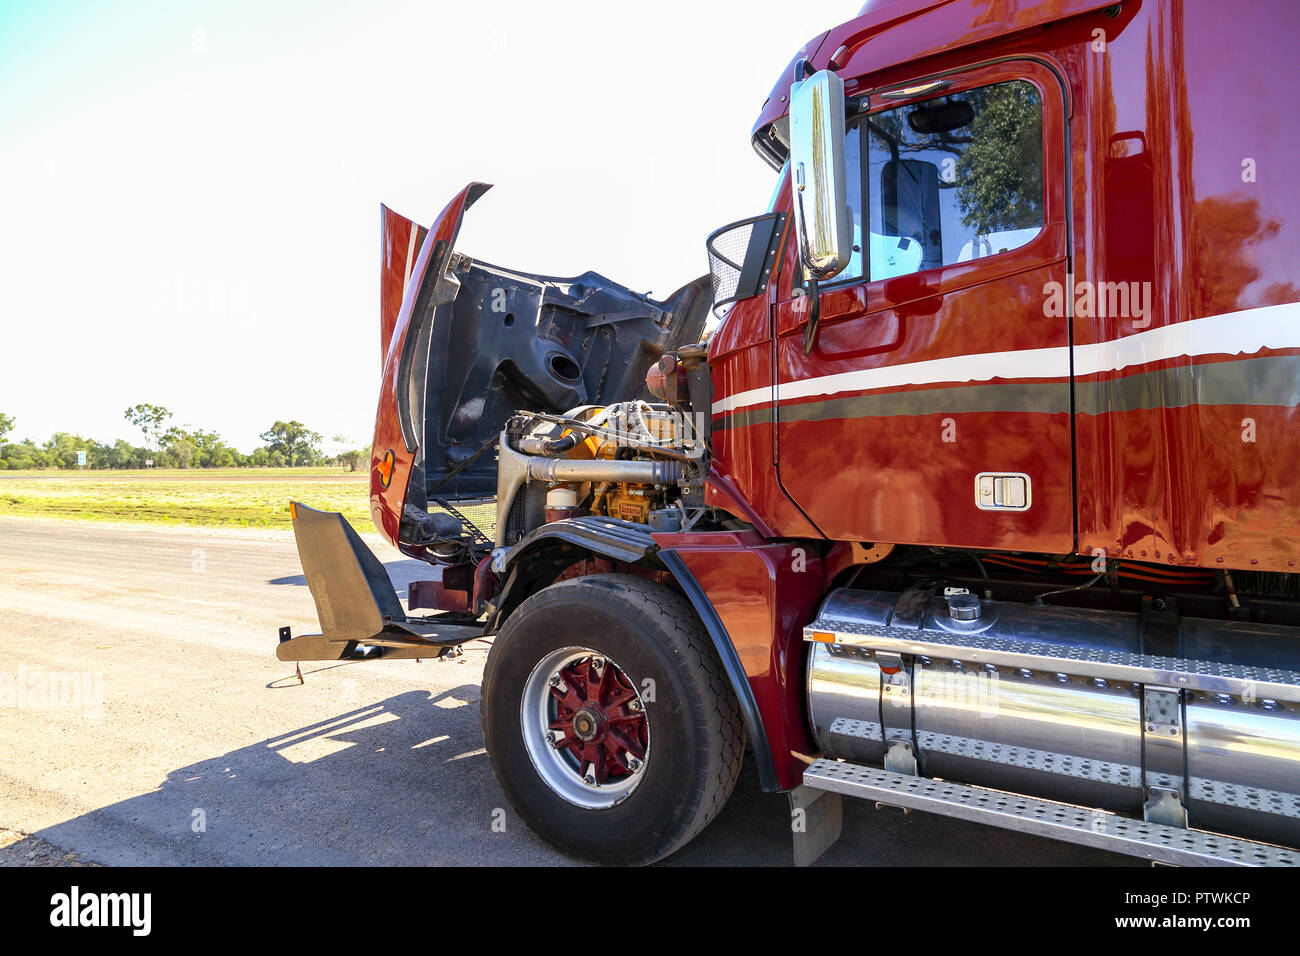 A red or maroon semi-trailer broken down with bonnet up. - Stock Image